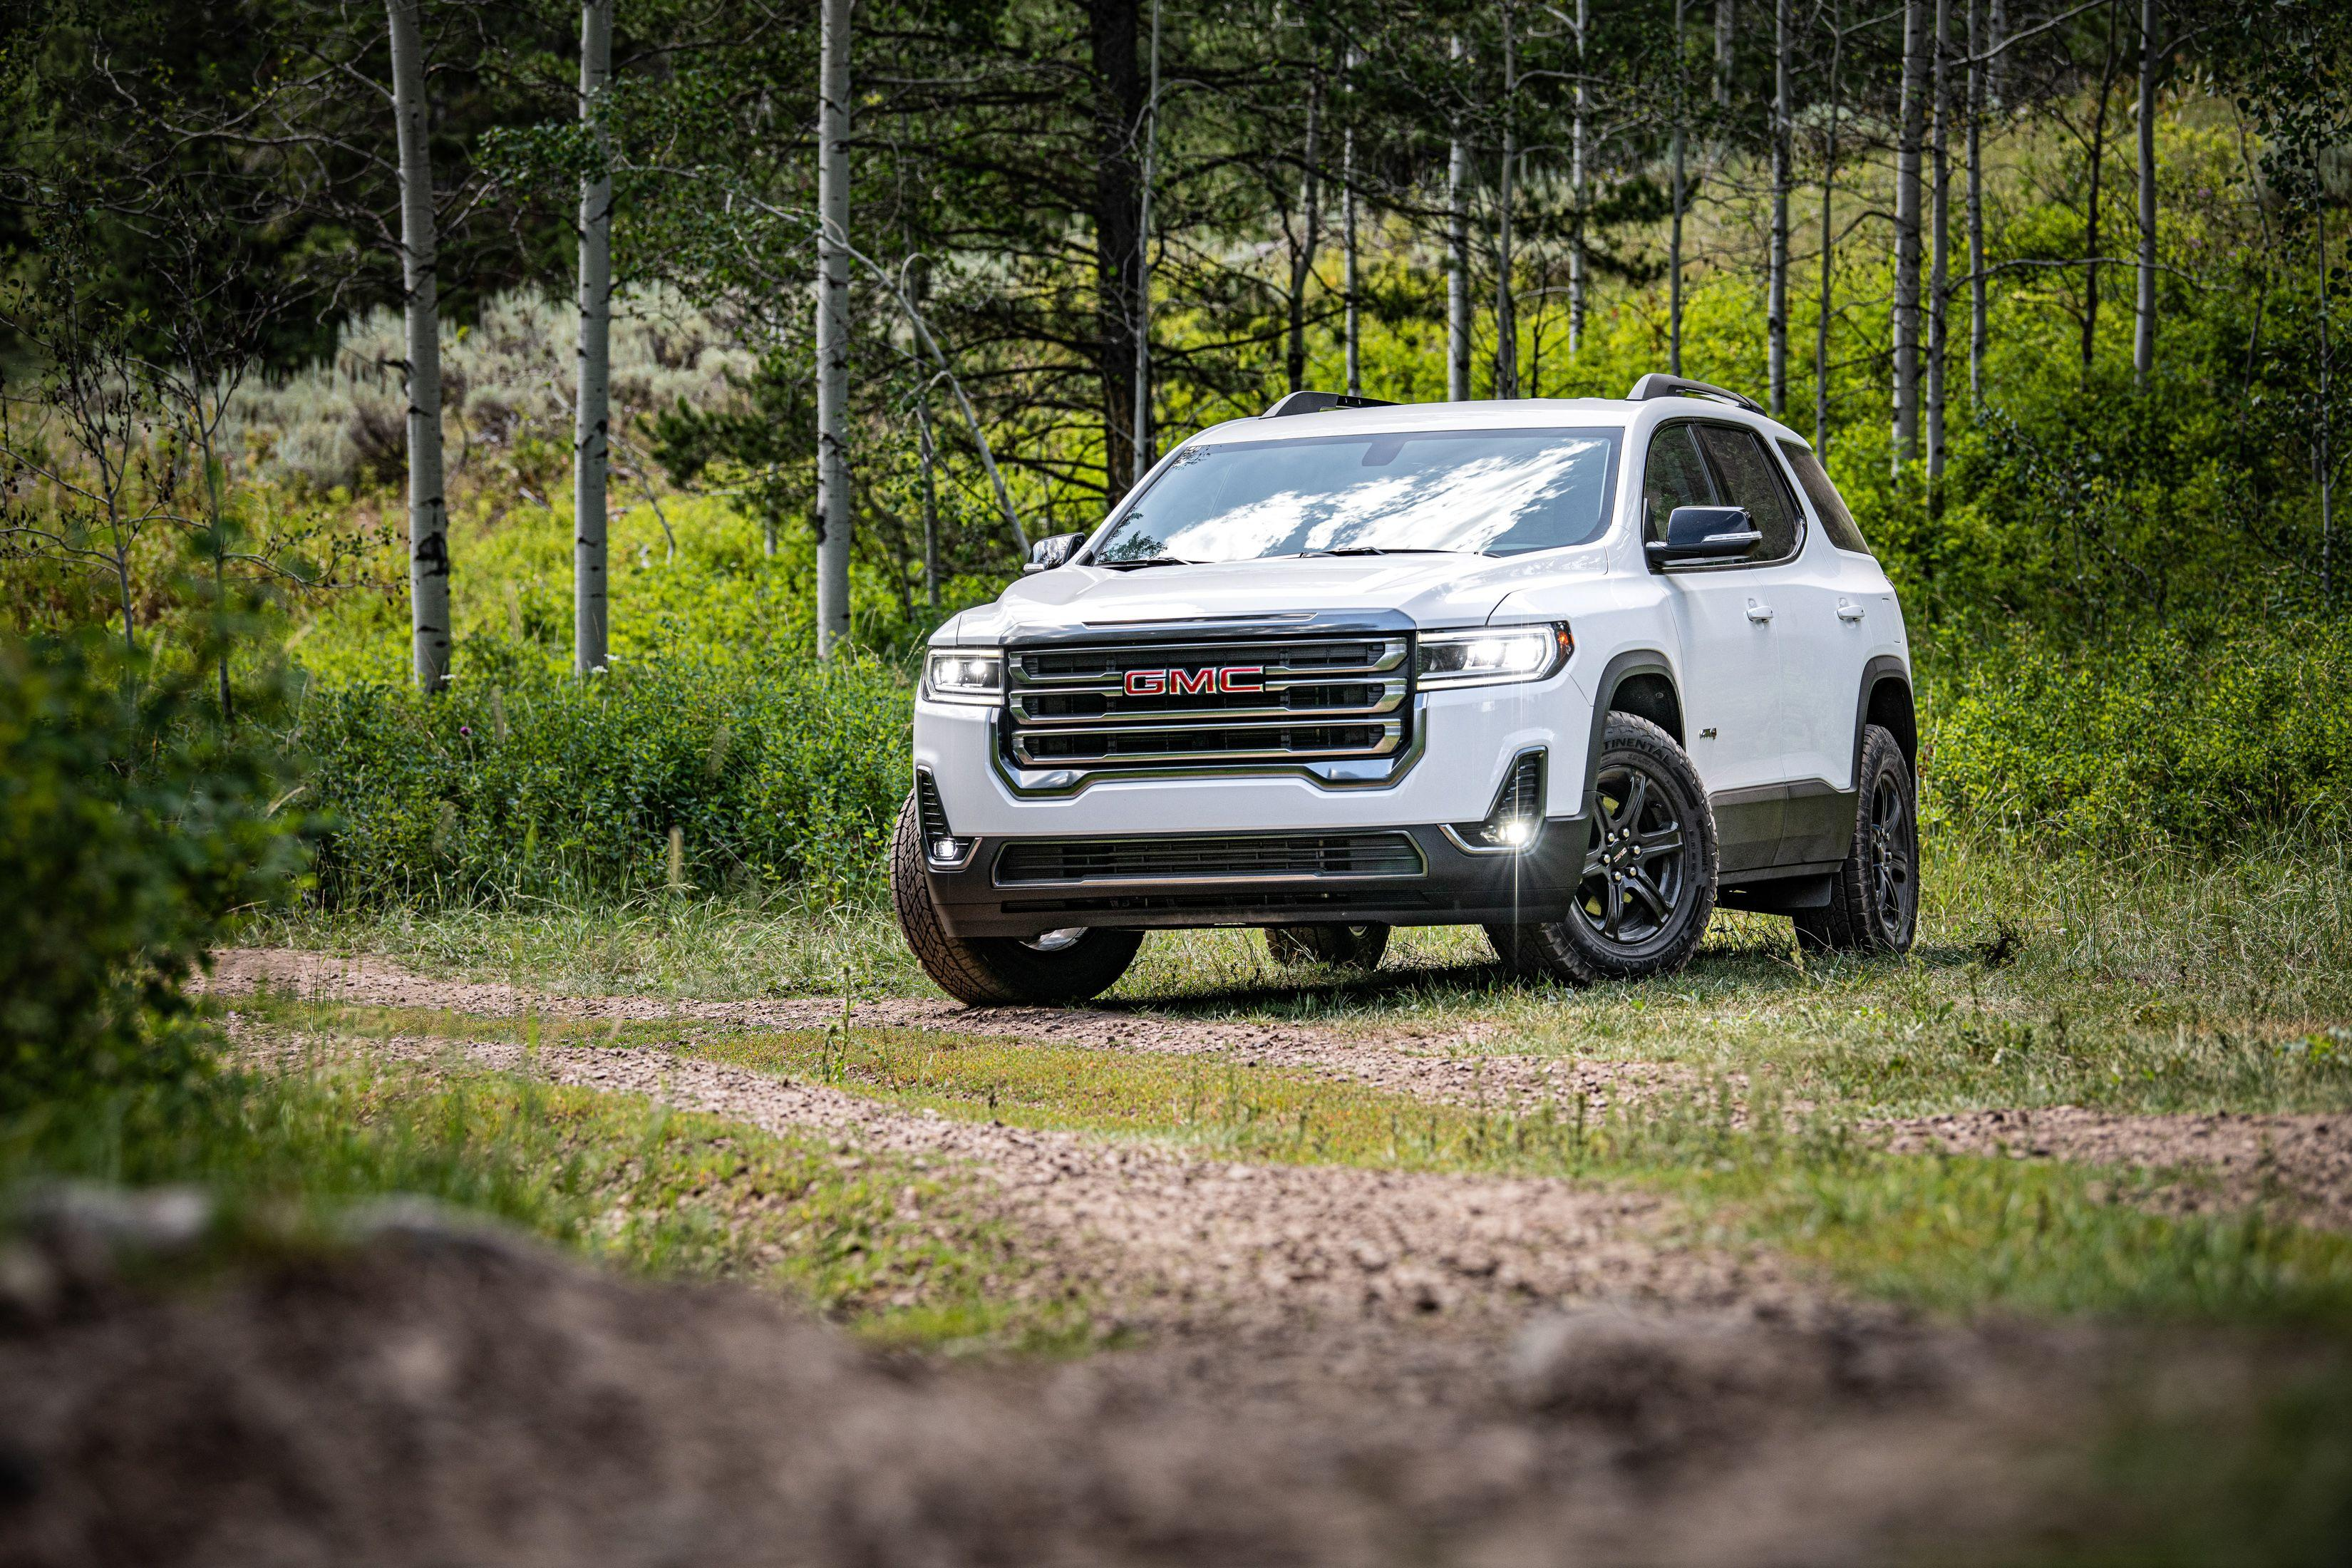 """<p>The GMC Acadia benefits from a host of mechanical and cosmetic upgrades for the 2020 model year, as well as a new rugged-looking AT4 trim level. Read the full story <a href=""""https://www.caranddriver.com/reviews/a29538377/2020-gmc-acadia-drive/"""" rel=""""nofollow noopener"""" target=""""_blank"""" data-ylk=""""slk:here"""" class=""""link rapid-noclick-resp"""">here</a>.</p>"""